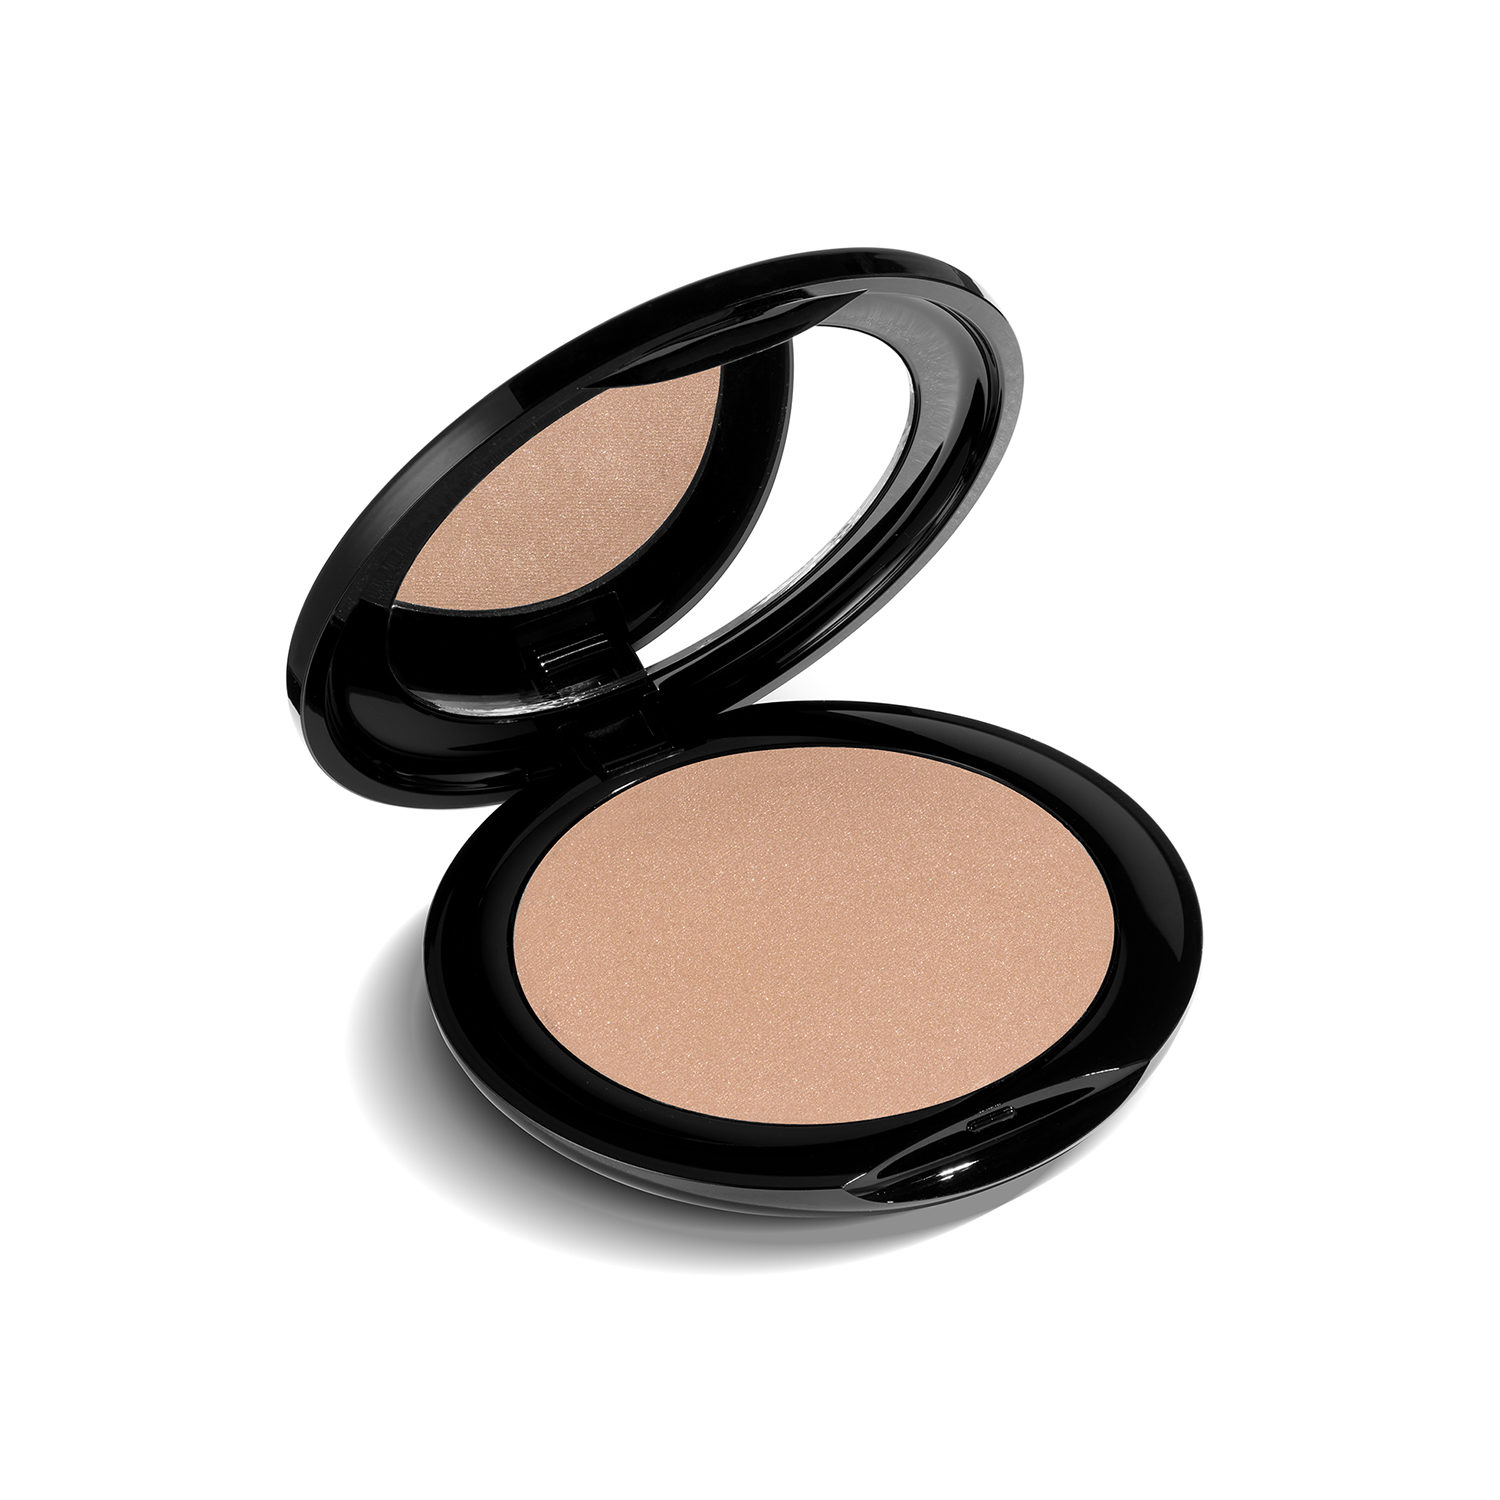 PERFECT FINISH COMPACT FACE POWDER (03 Light Tan)